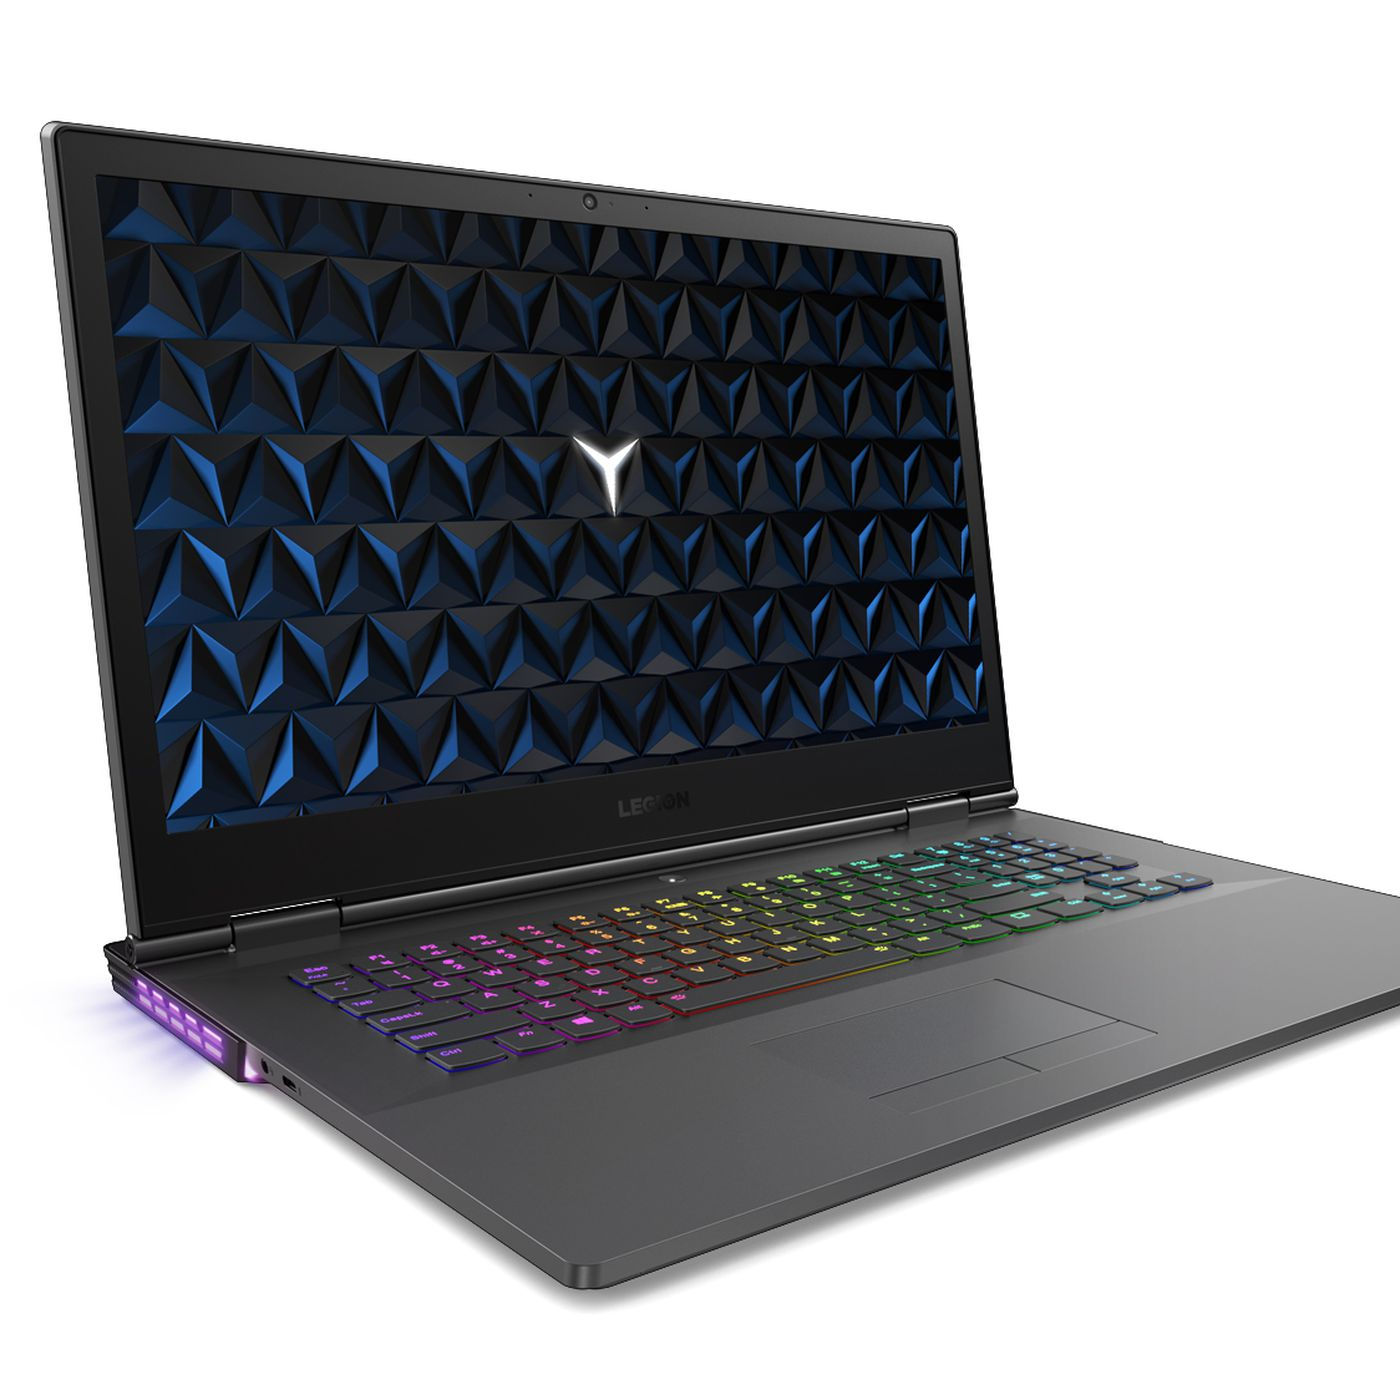 Lenovo refreshed its Legion gaming laptop and desktop lineup